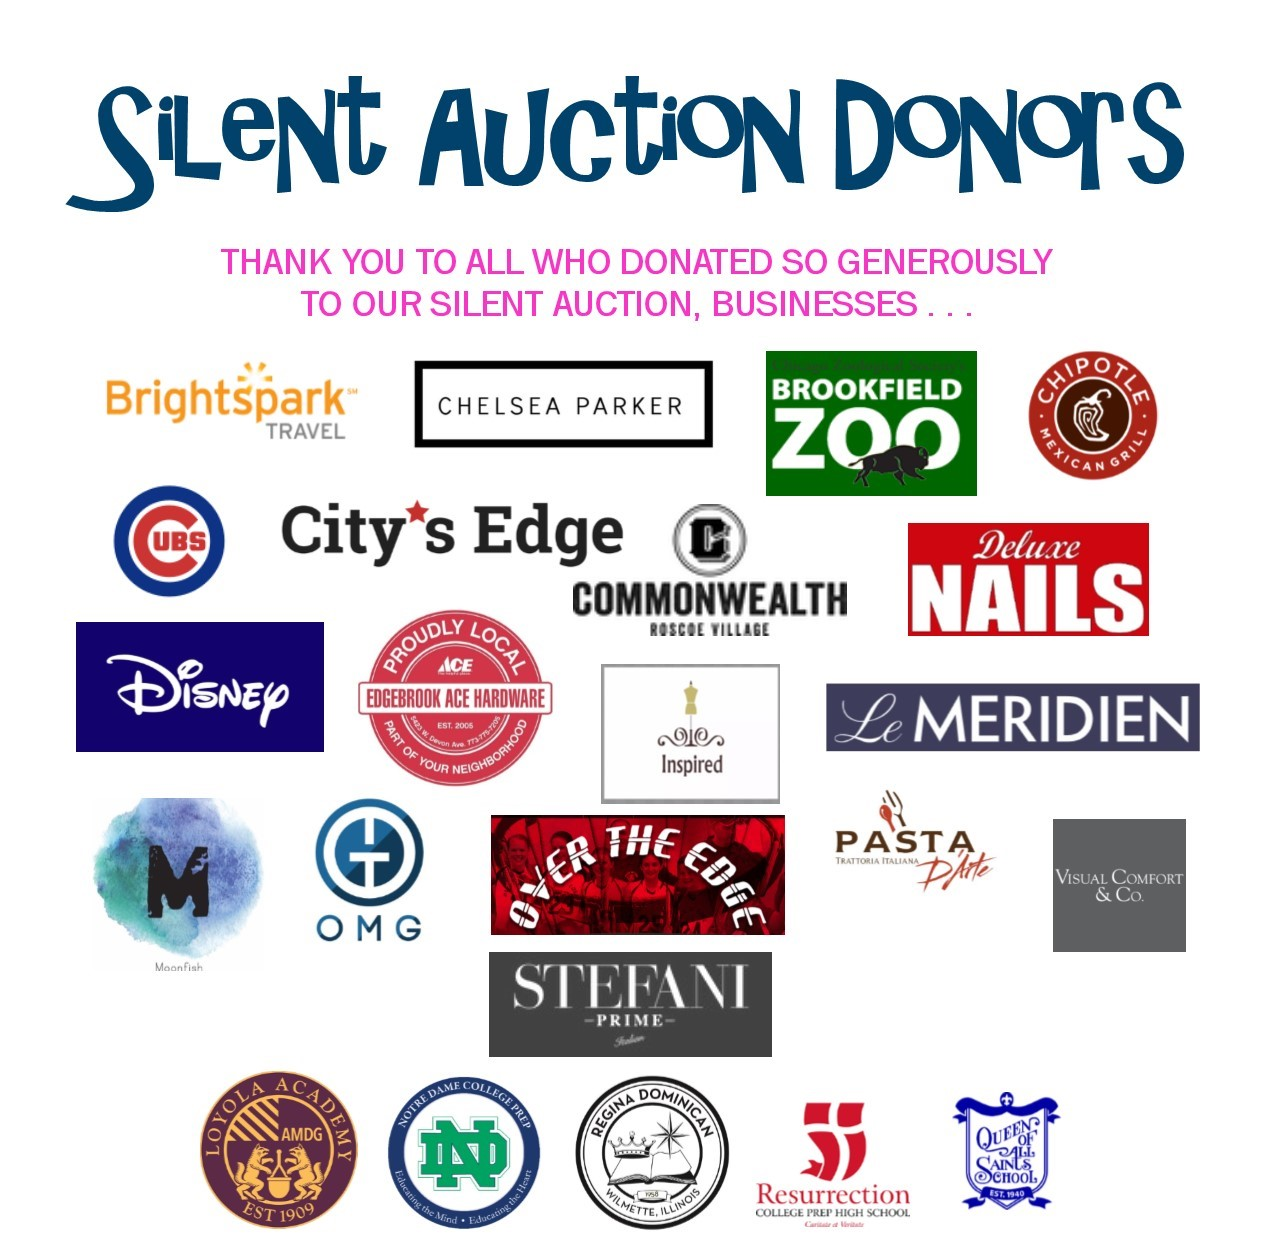 2020 silent auction donors